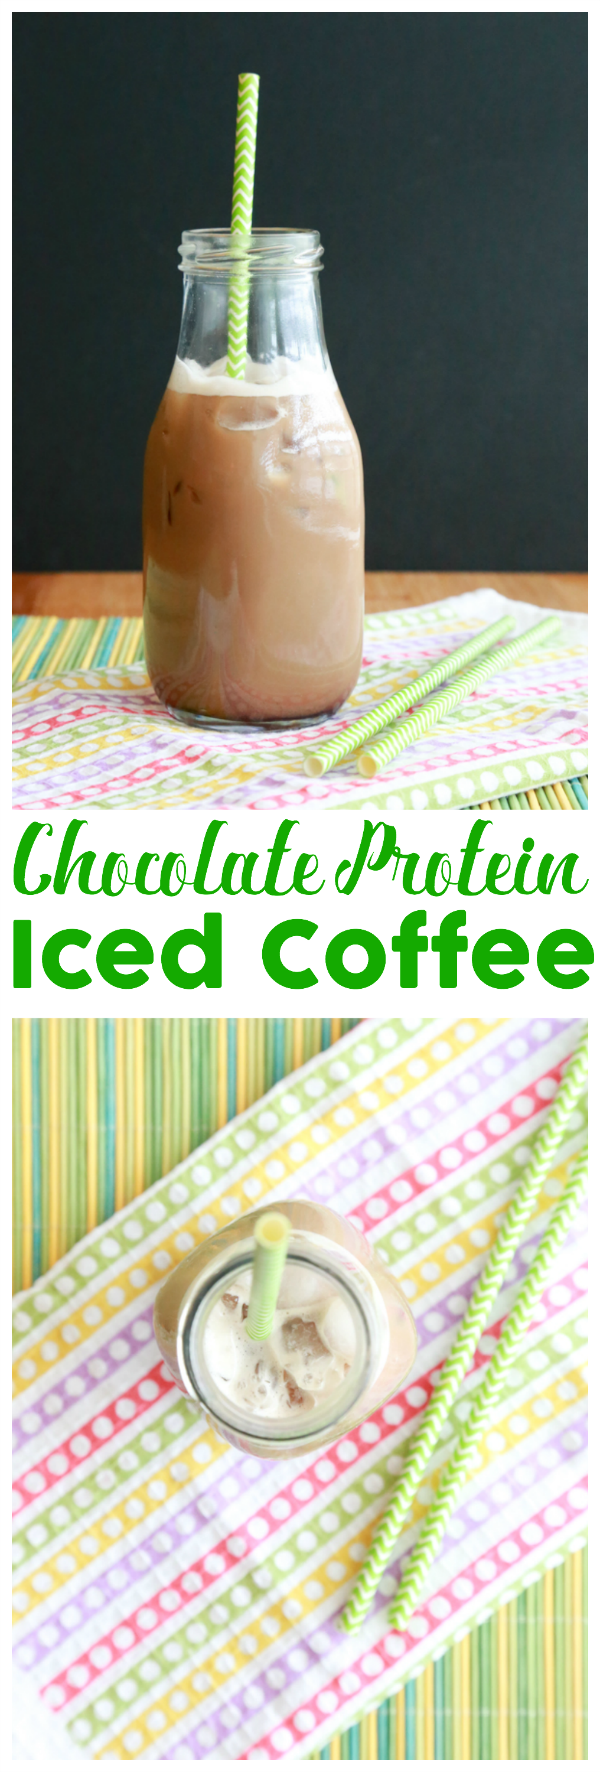 Sneak in a little protein in your morning coffee with this easy Chocolate Protein Iced Coffee recipe.